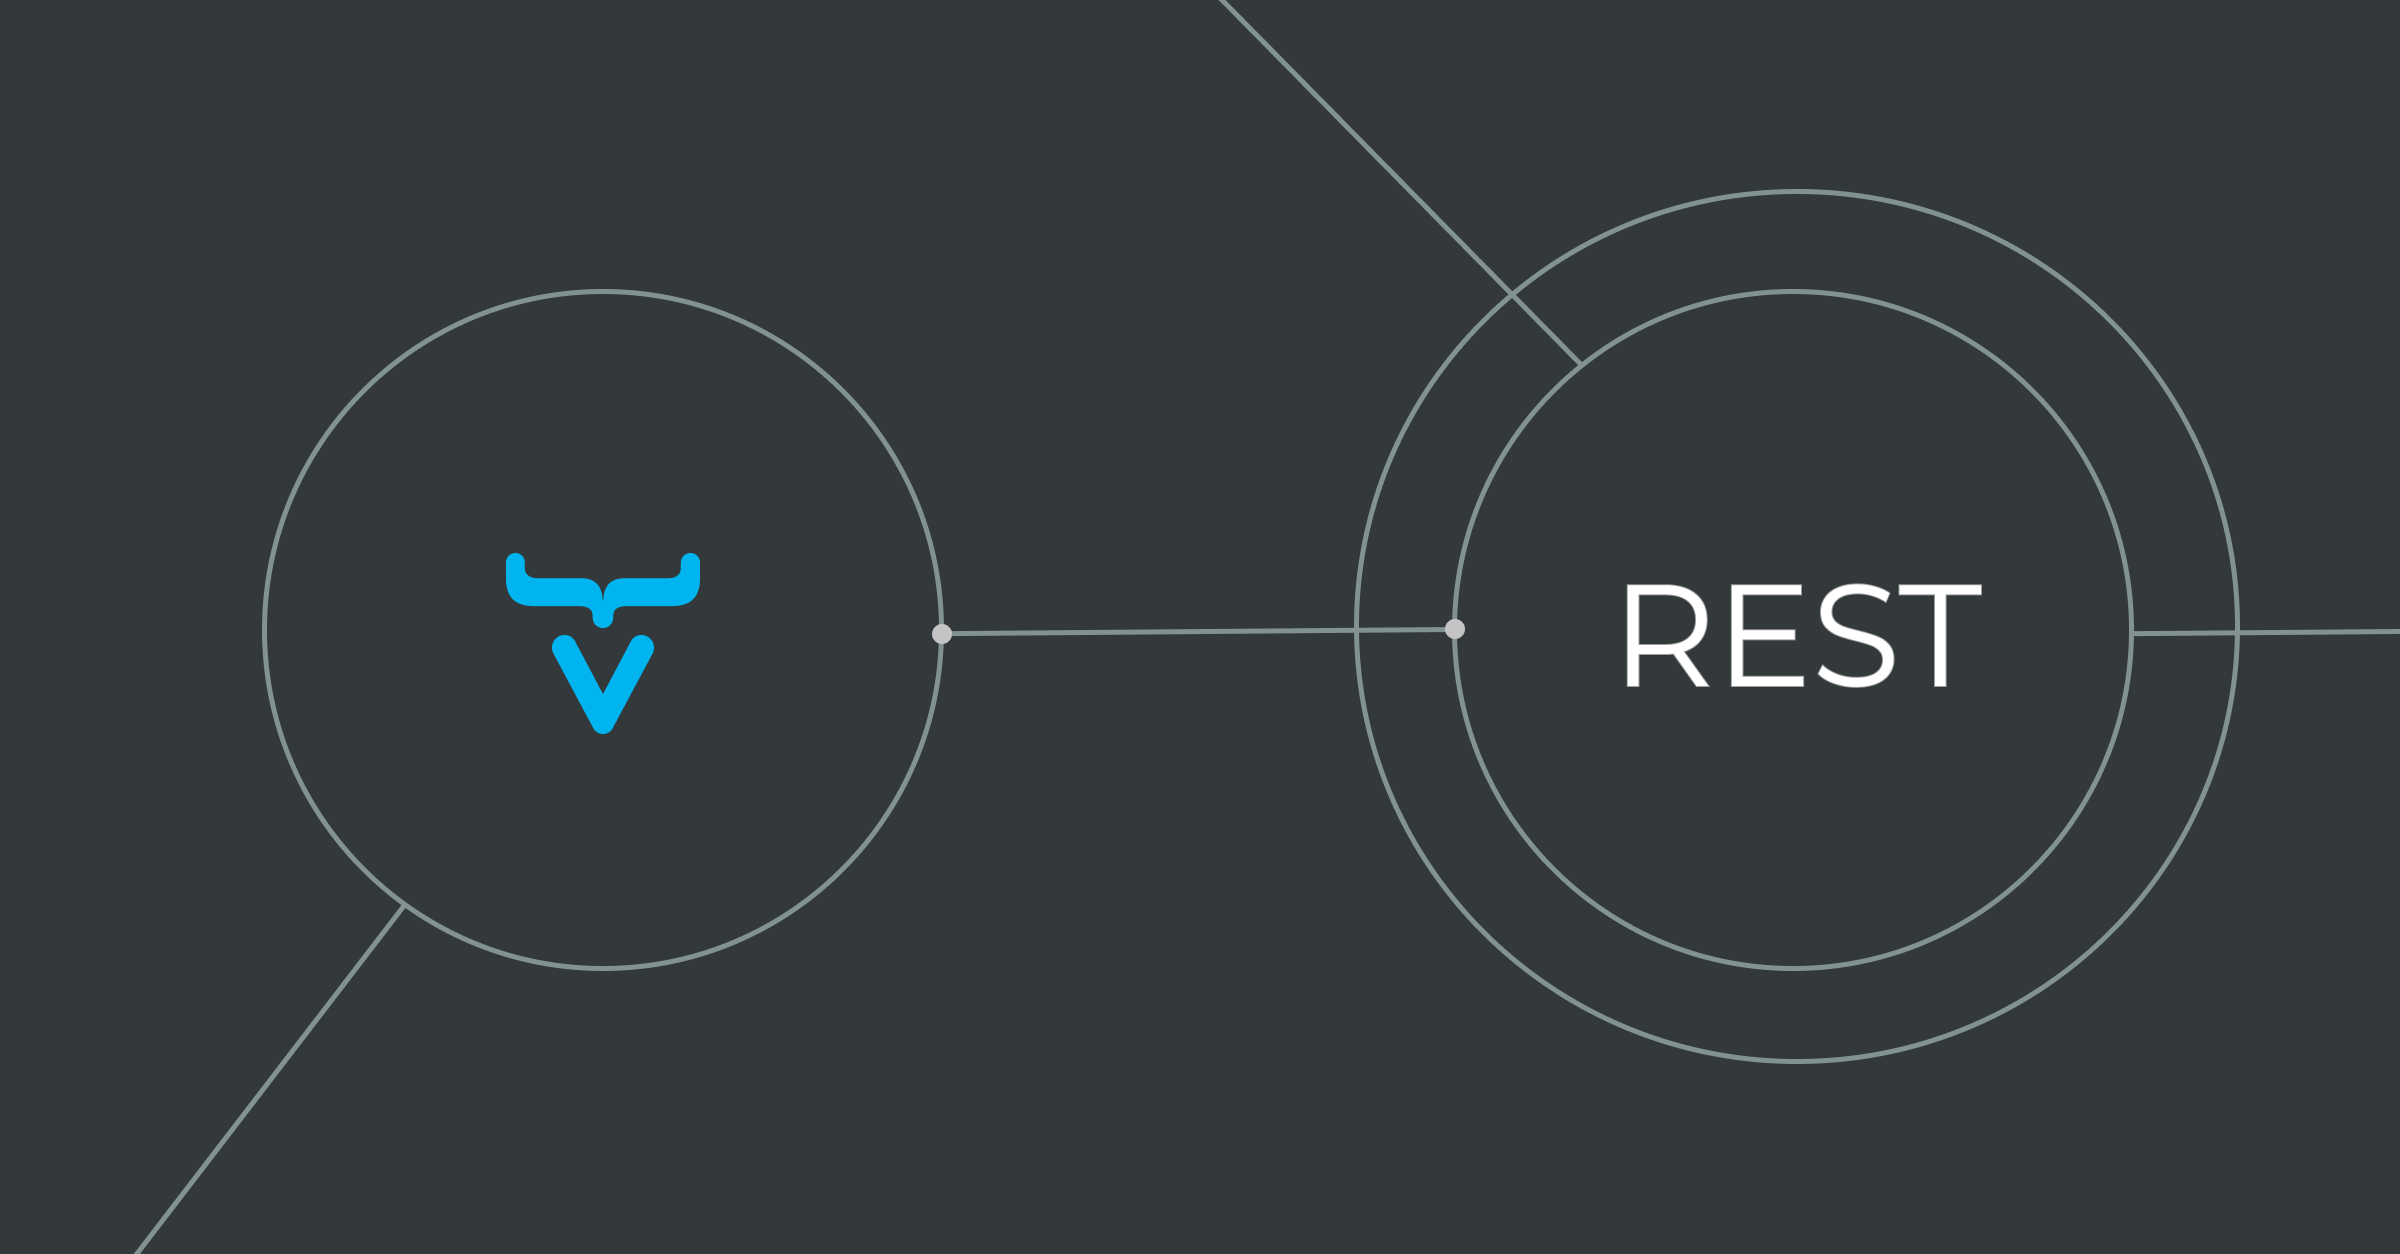 How do Vaadin endpoints compare to REST?